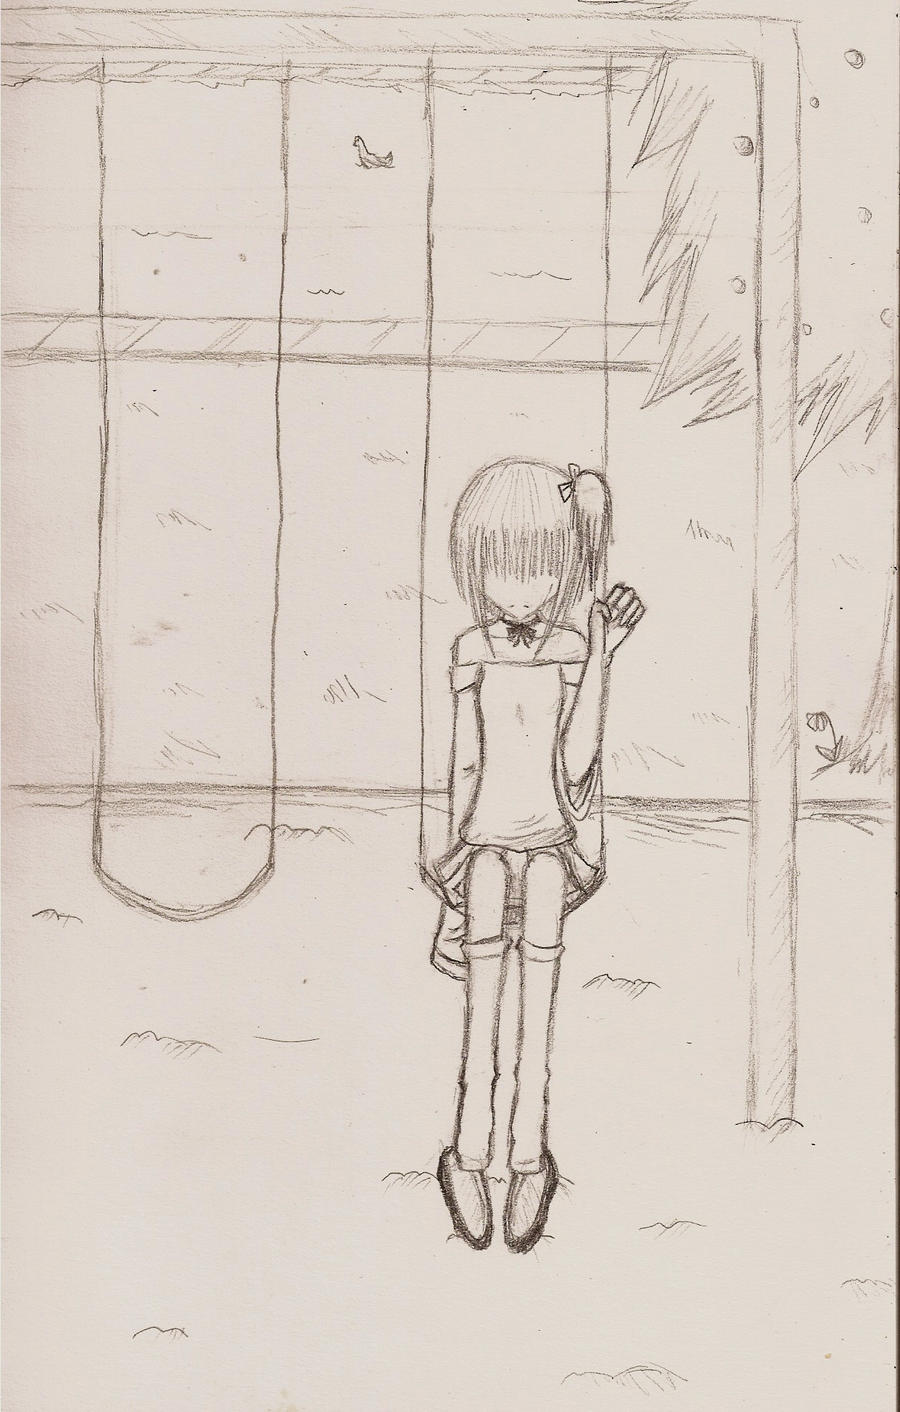 Swinging with No One by eeveelover893